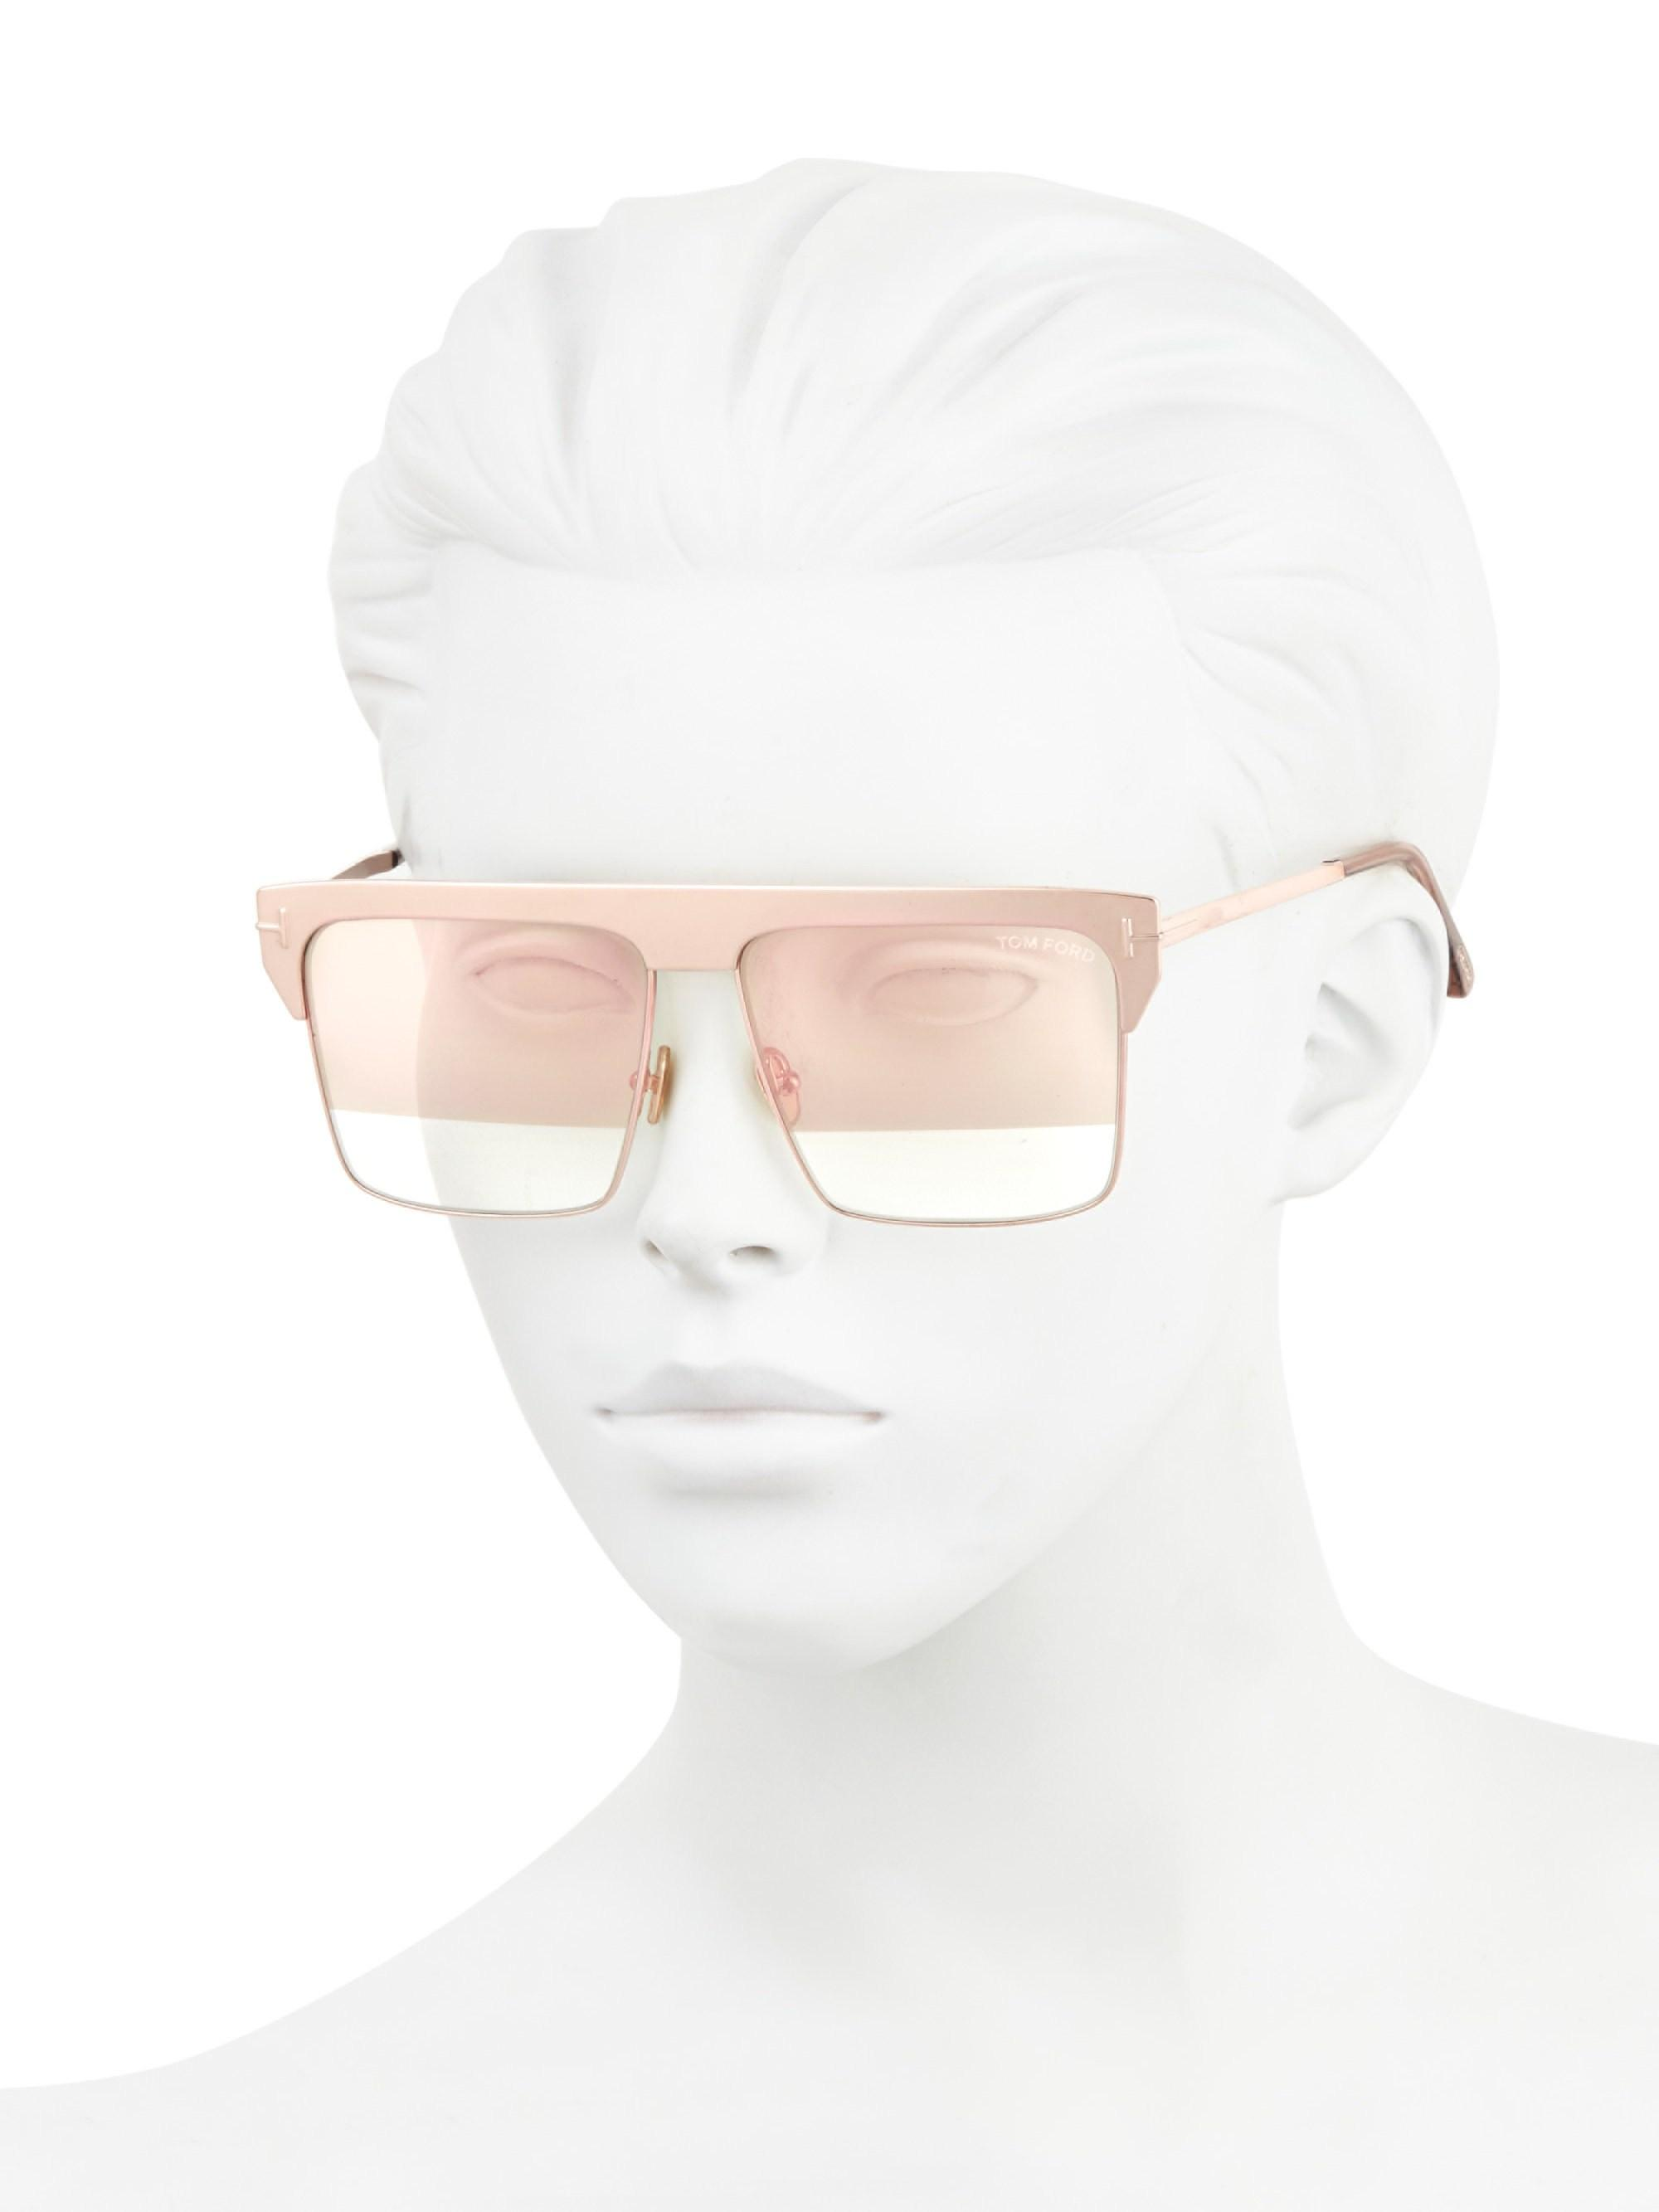 cc61d1be57 Tom Ford - Multicolor Women s West 59mm Square Rose Goldplated Sunglasses -  Rose Gold - Lyst. View fullscreen